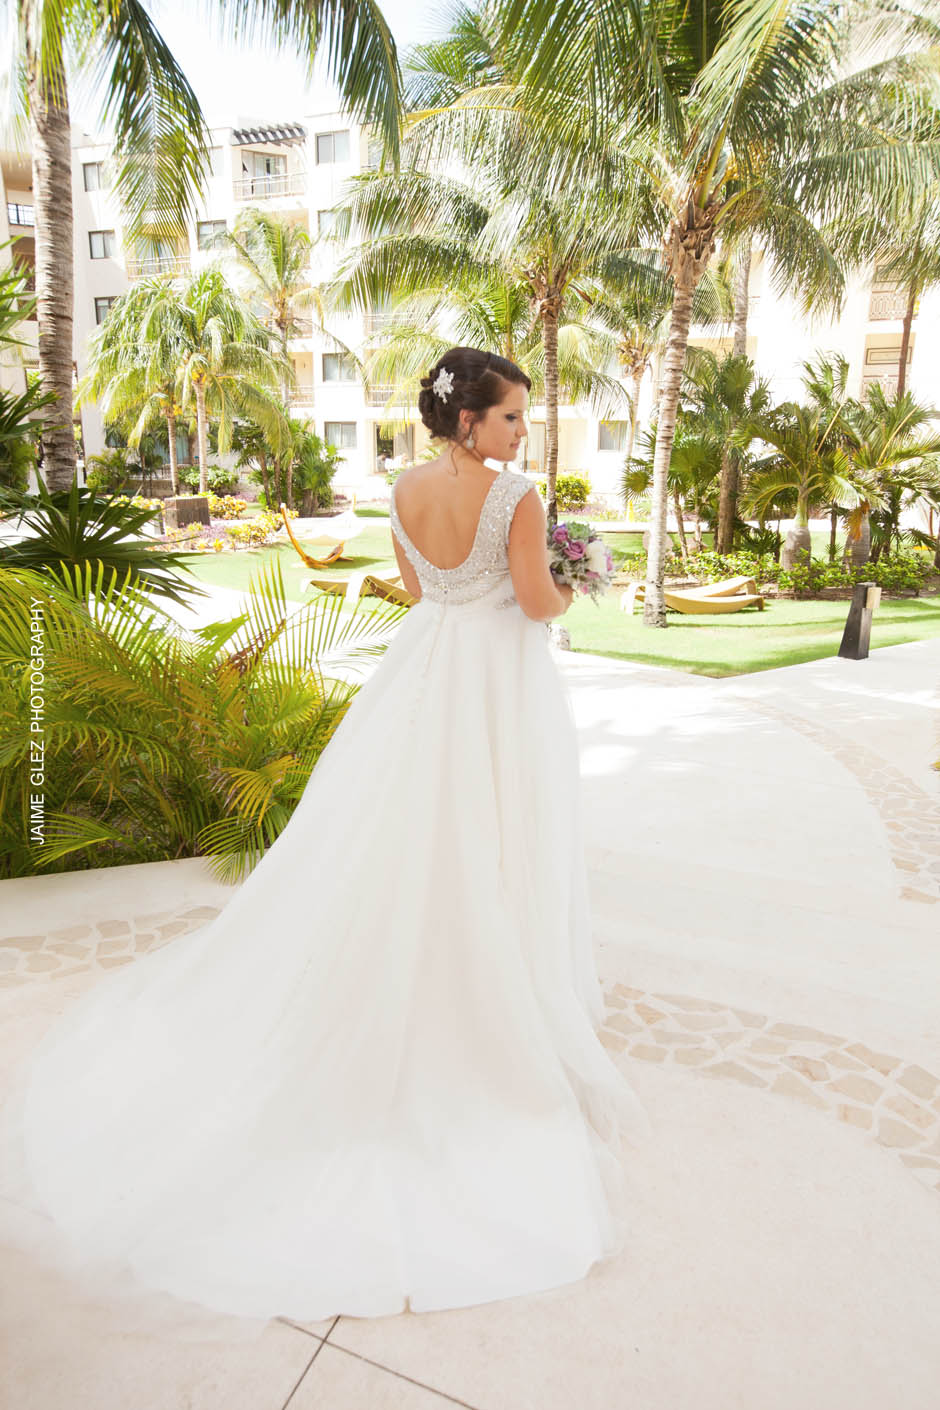 dreams-riviera-cancun-wedding-9